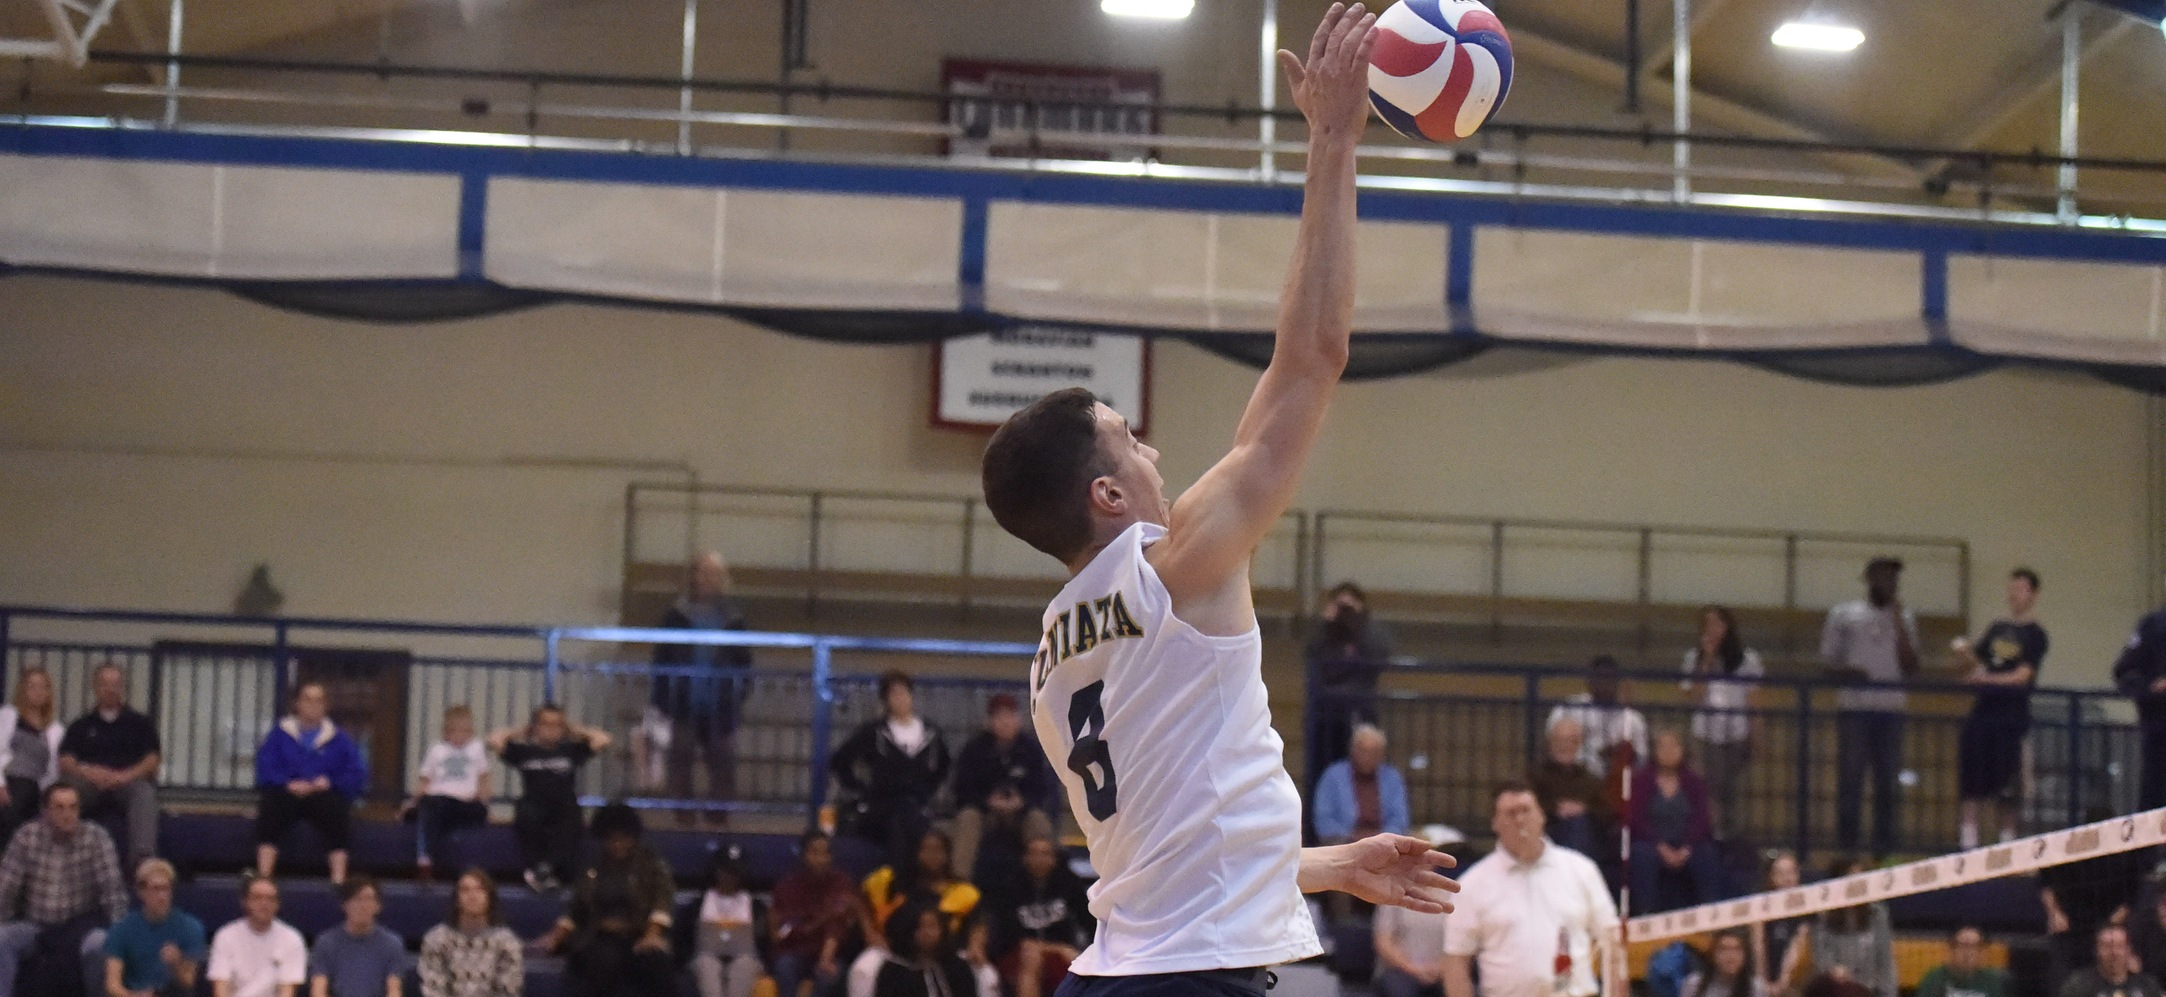 Matt Vasinko tied for a team-high 10 kills including the final kill of the match.